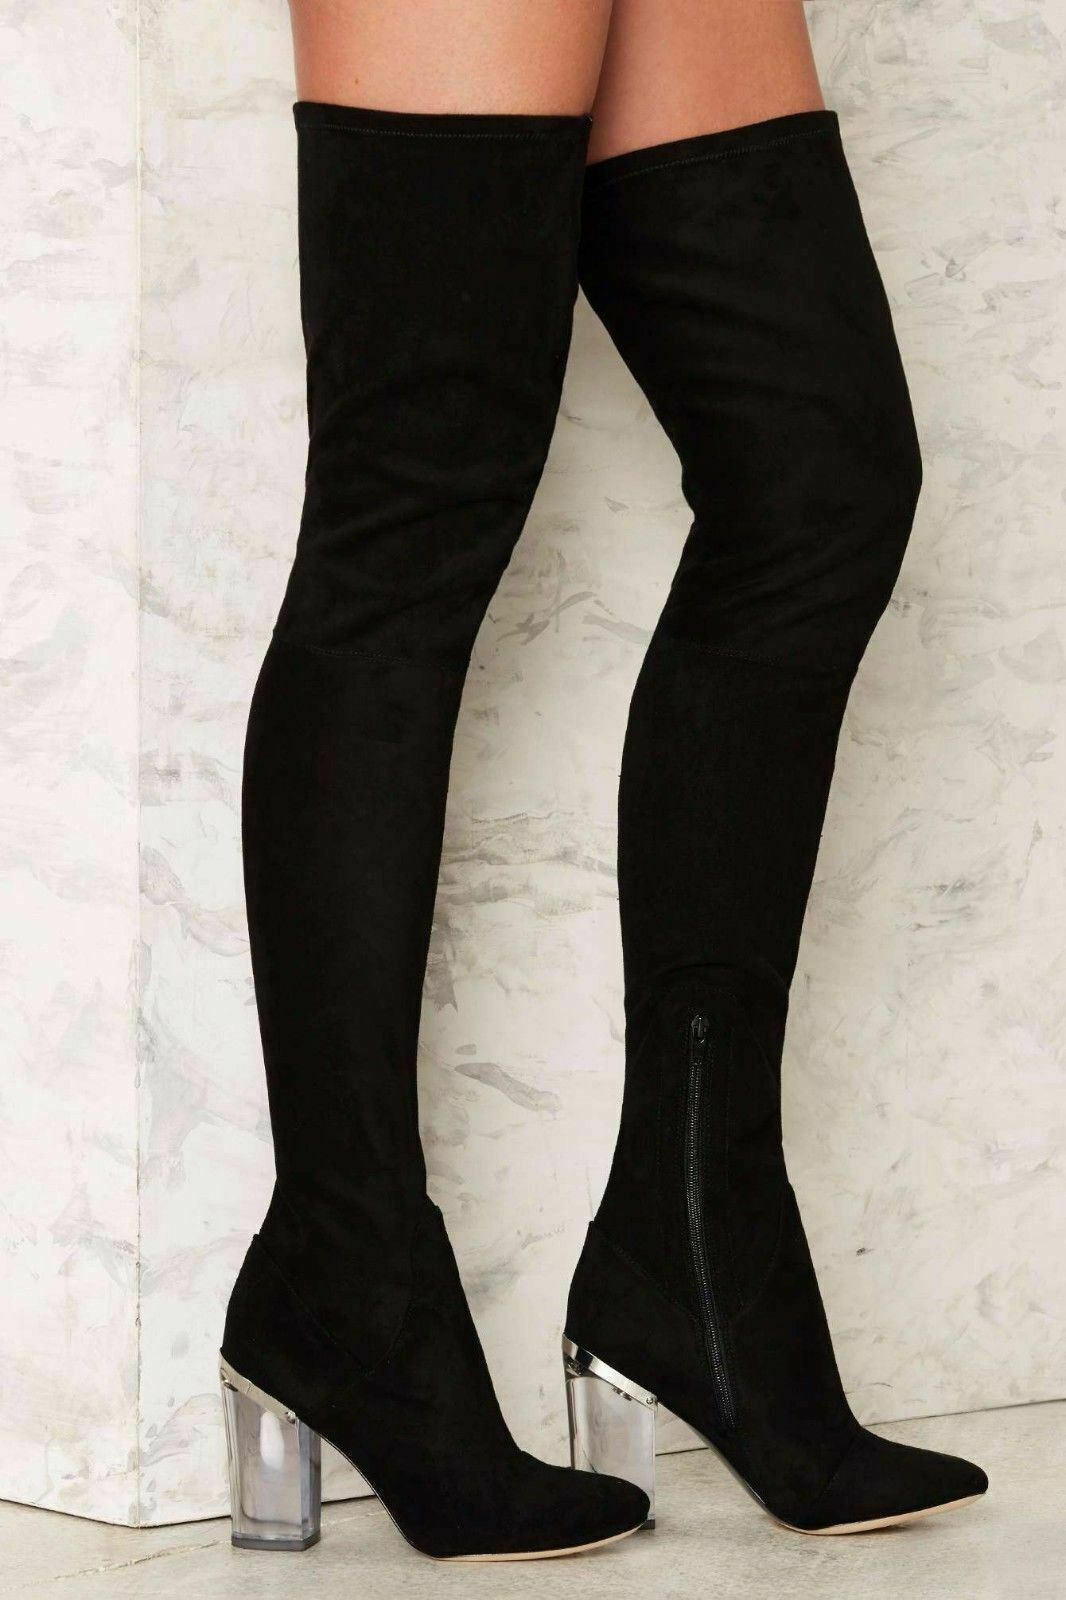 6c7bc37cff0 LFL Lust For Life Fifty Four Over the Knee Thigh High Stretch Suede Fitted  Boots • $67.99